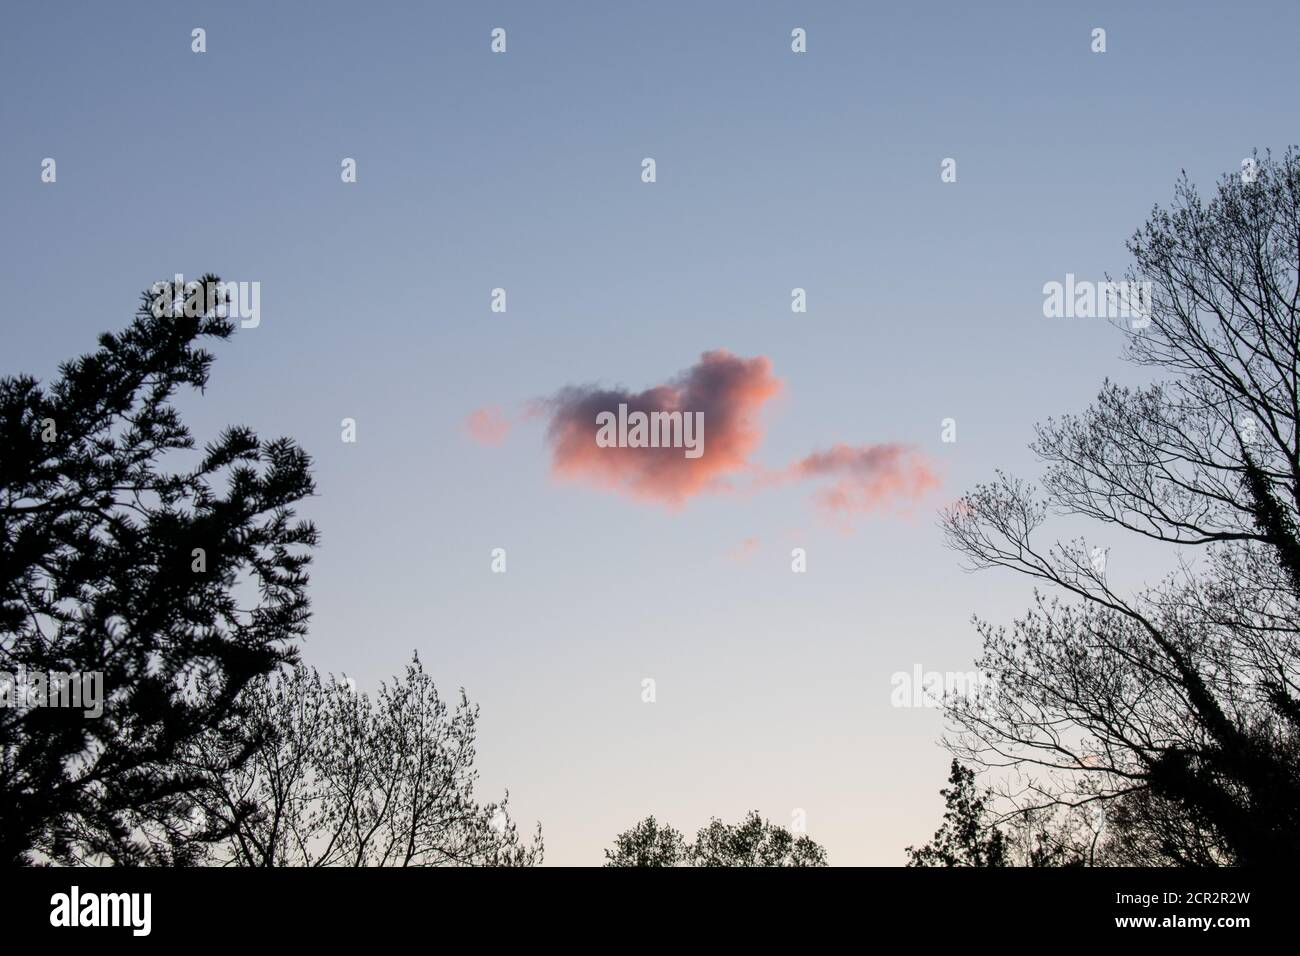 A Heart Shaped Pink Cloud on a Clear Blue Sky With Trees Around the Frame Stock Photo